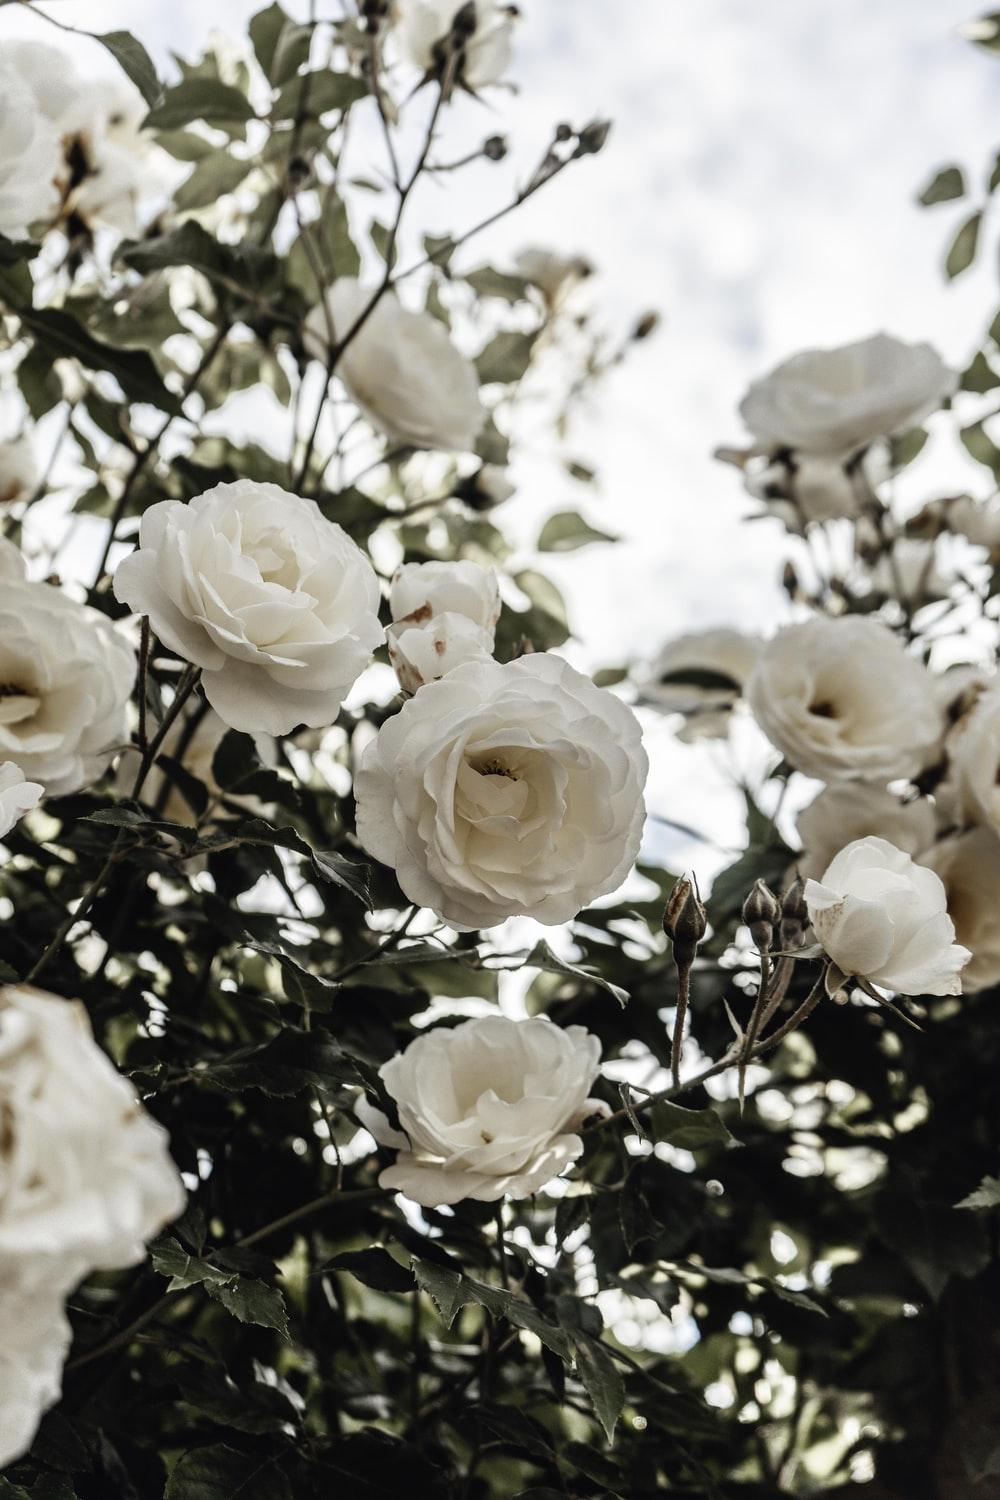 white roses in bloom during daytime